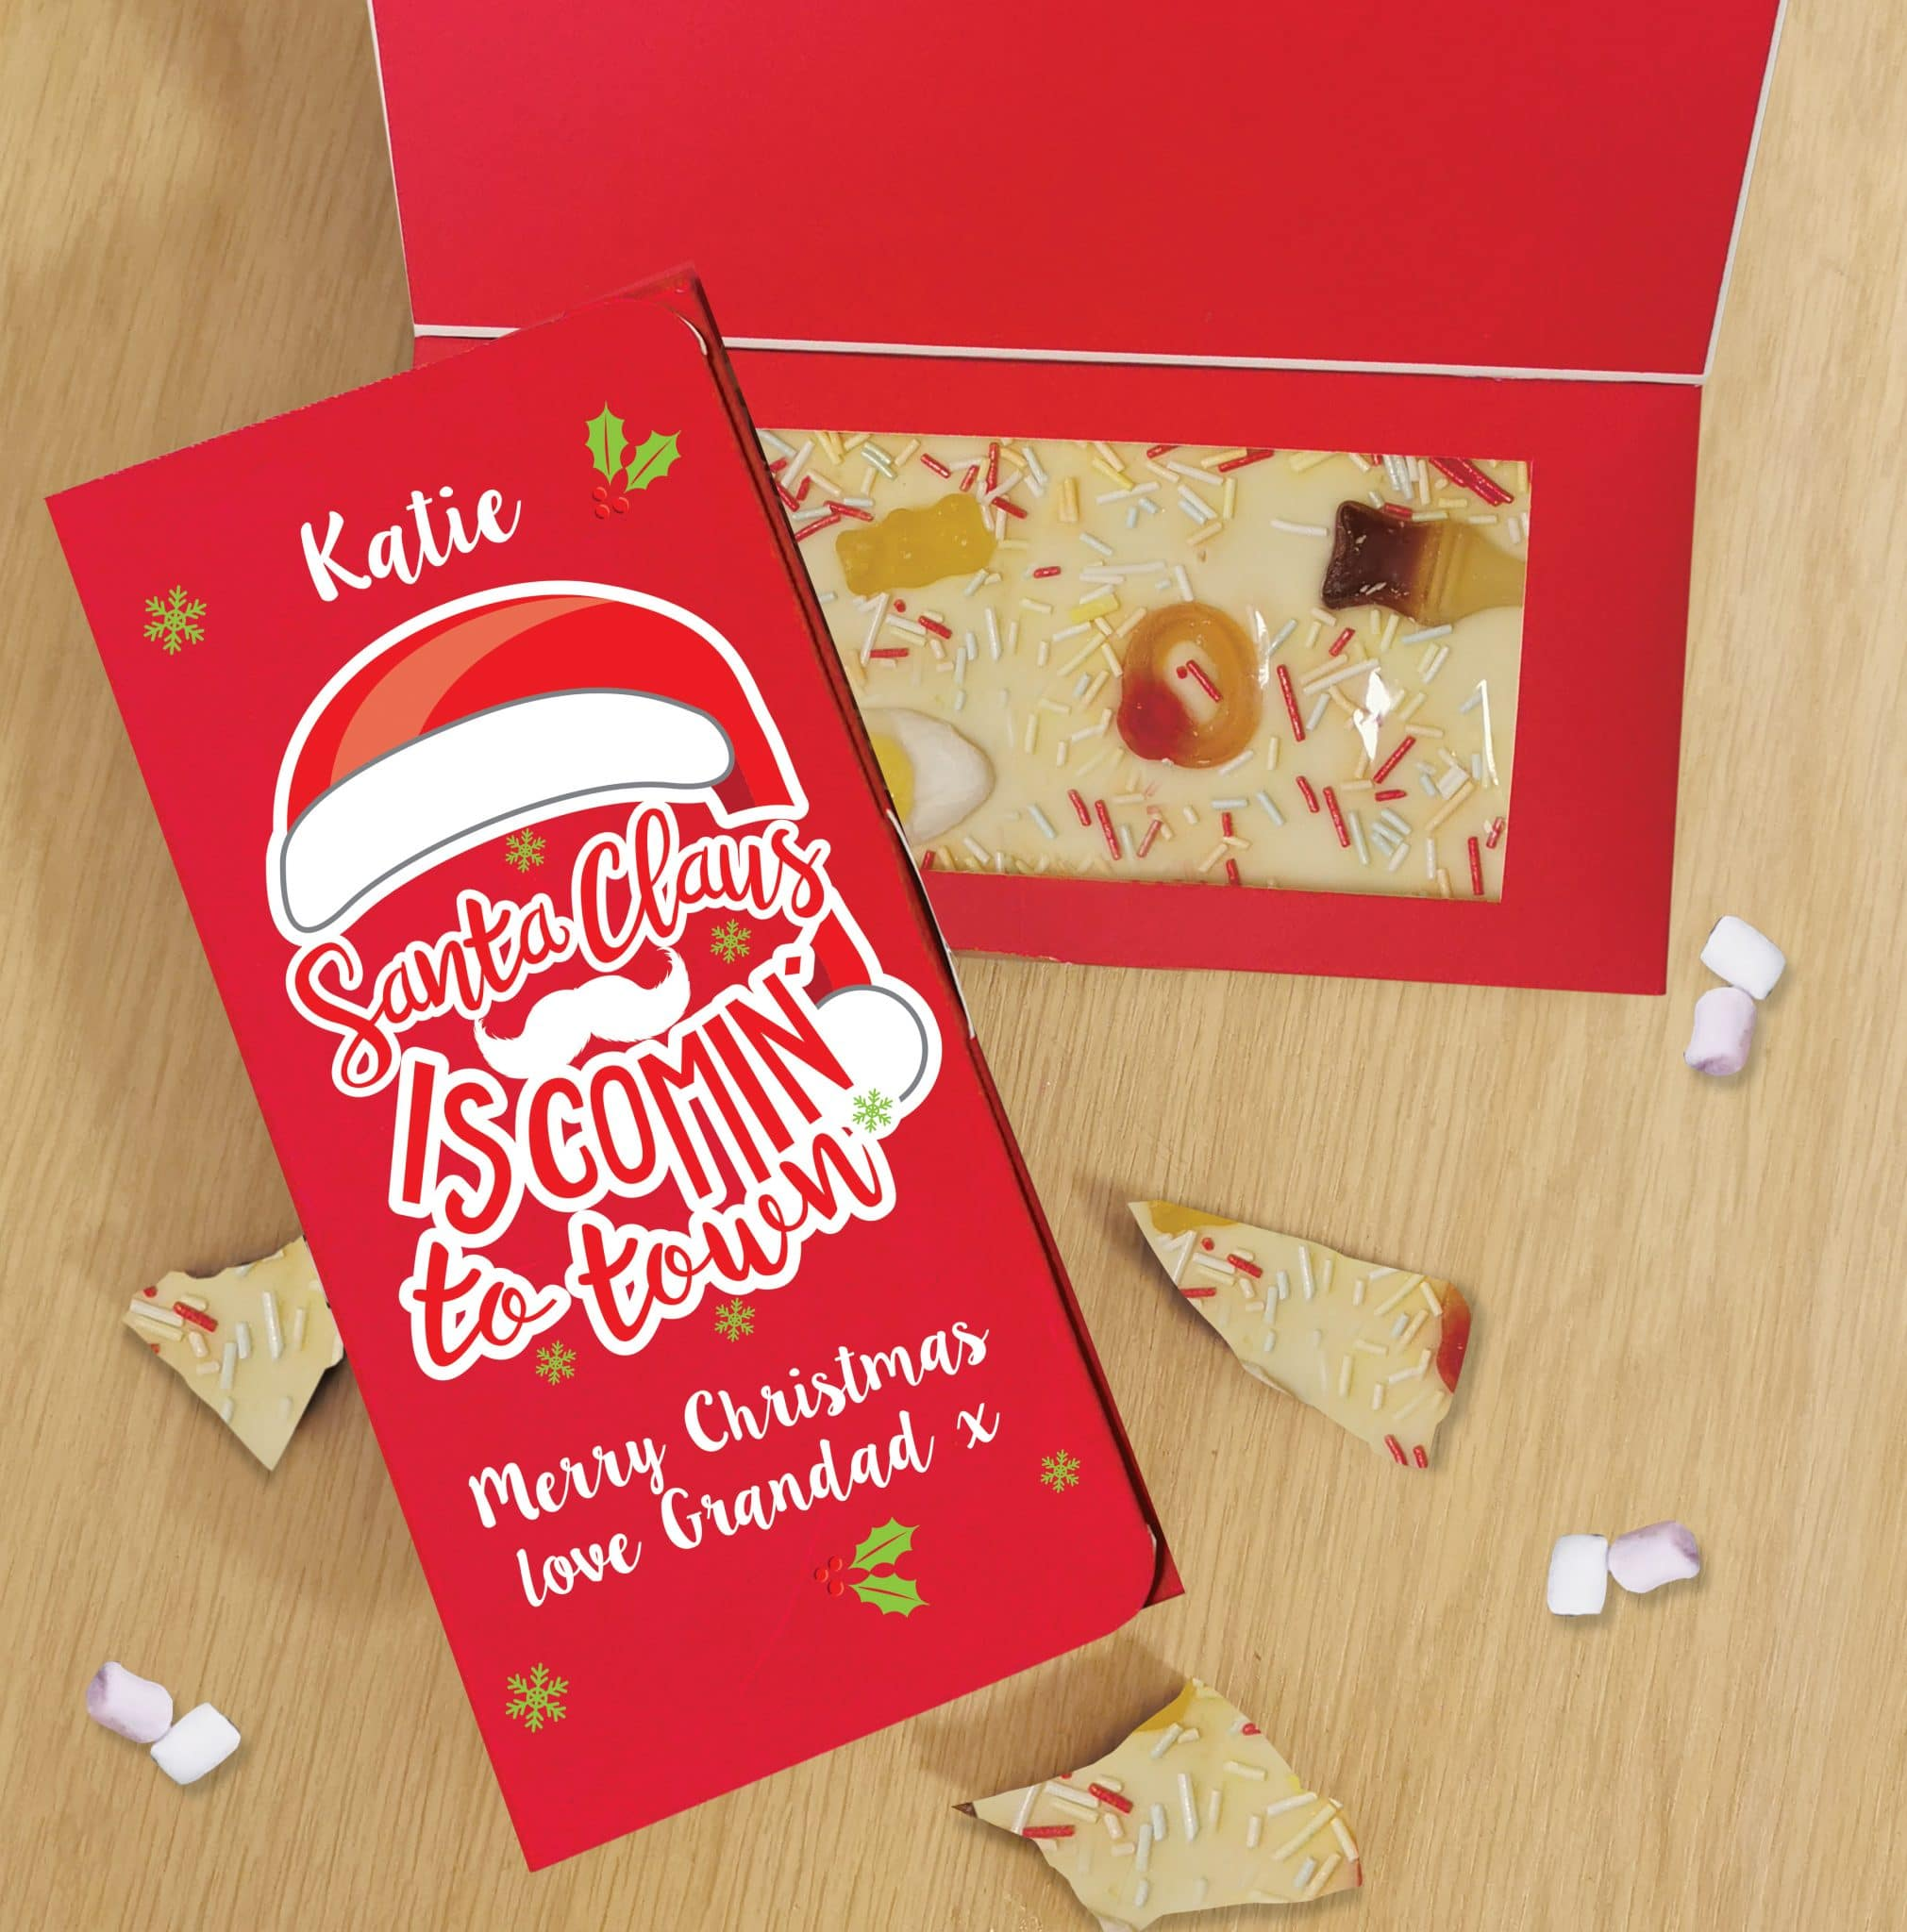 Personalised Santa Claus White Chocolate Letterbox Card, Gift Giving by Low Cost Gifts